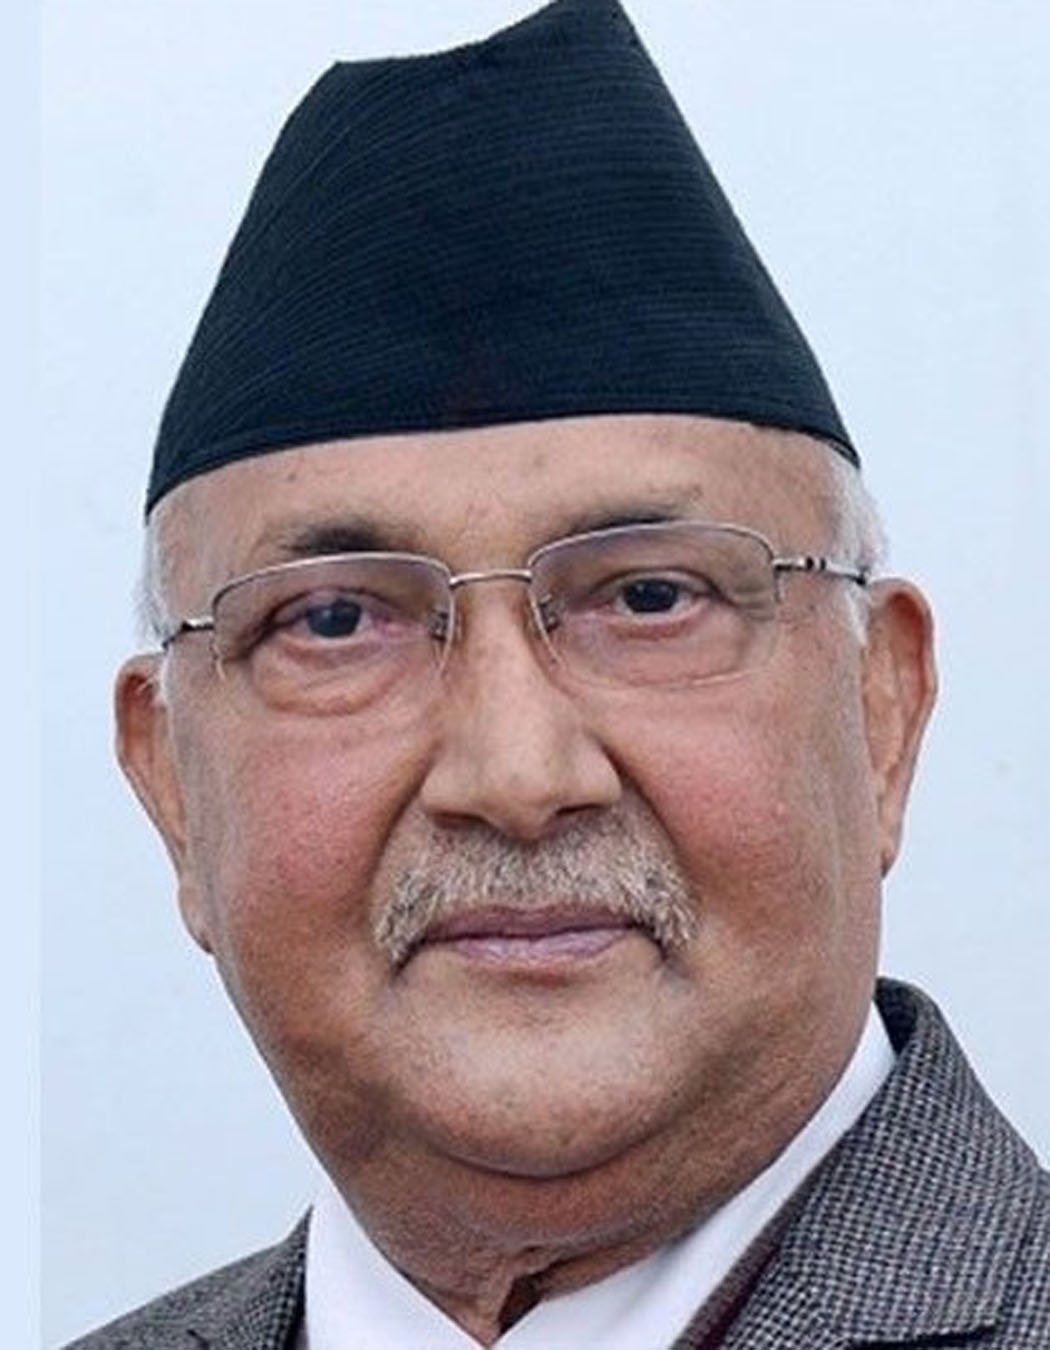 Rt. Hon. Mr. KP Sharma Oli